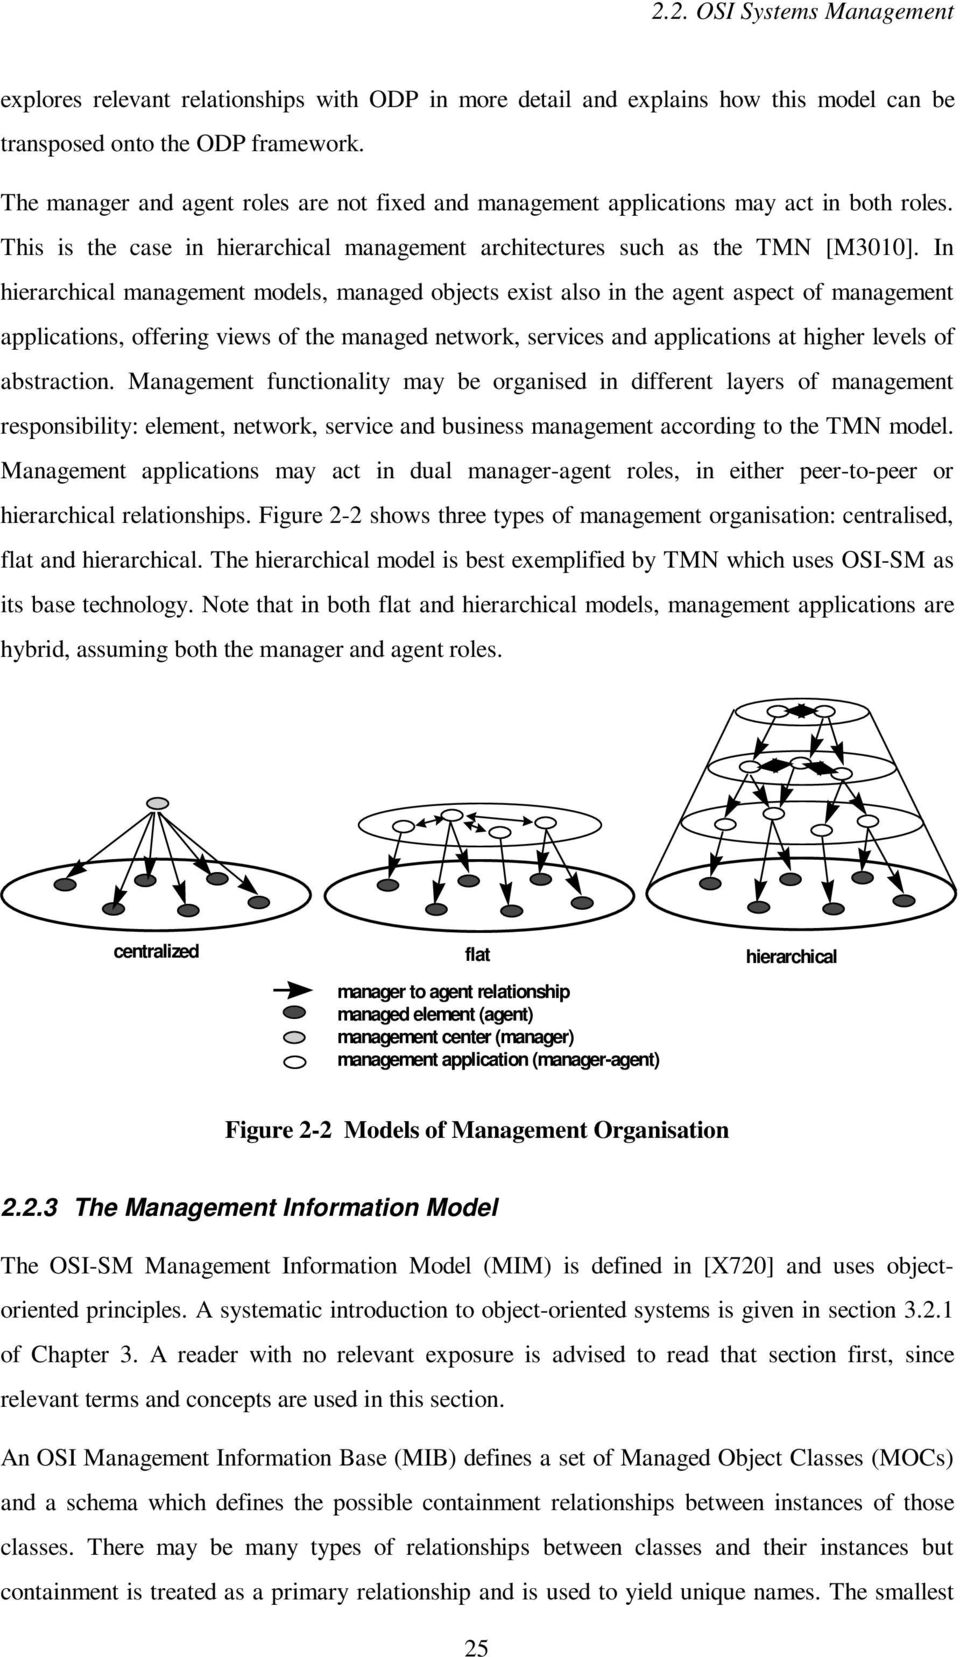 2  OSI Systems Management and the Telecommunications